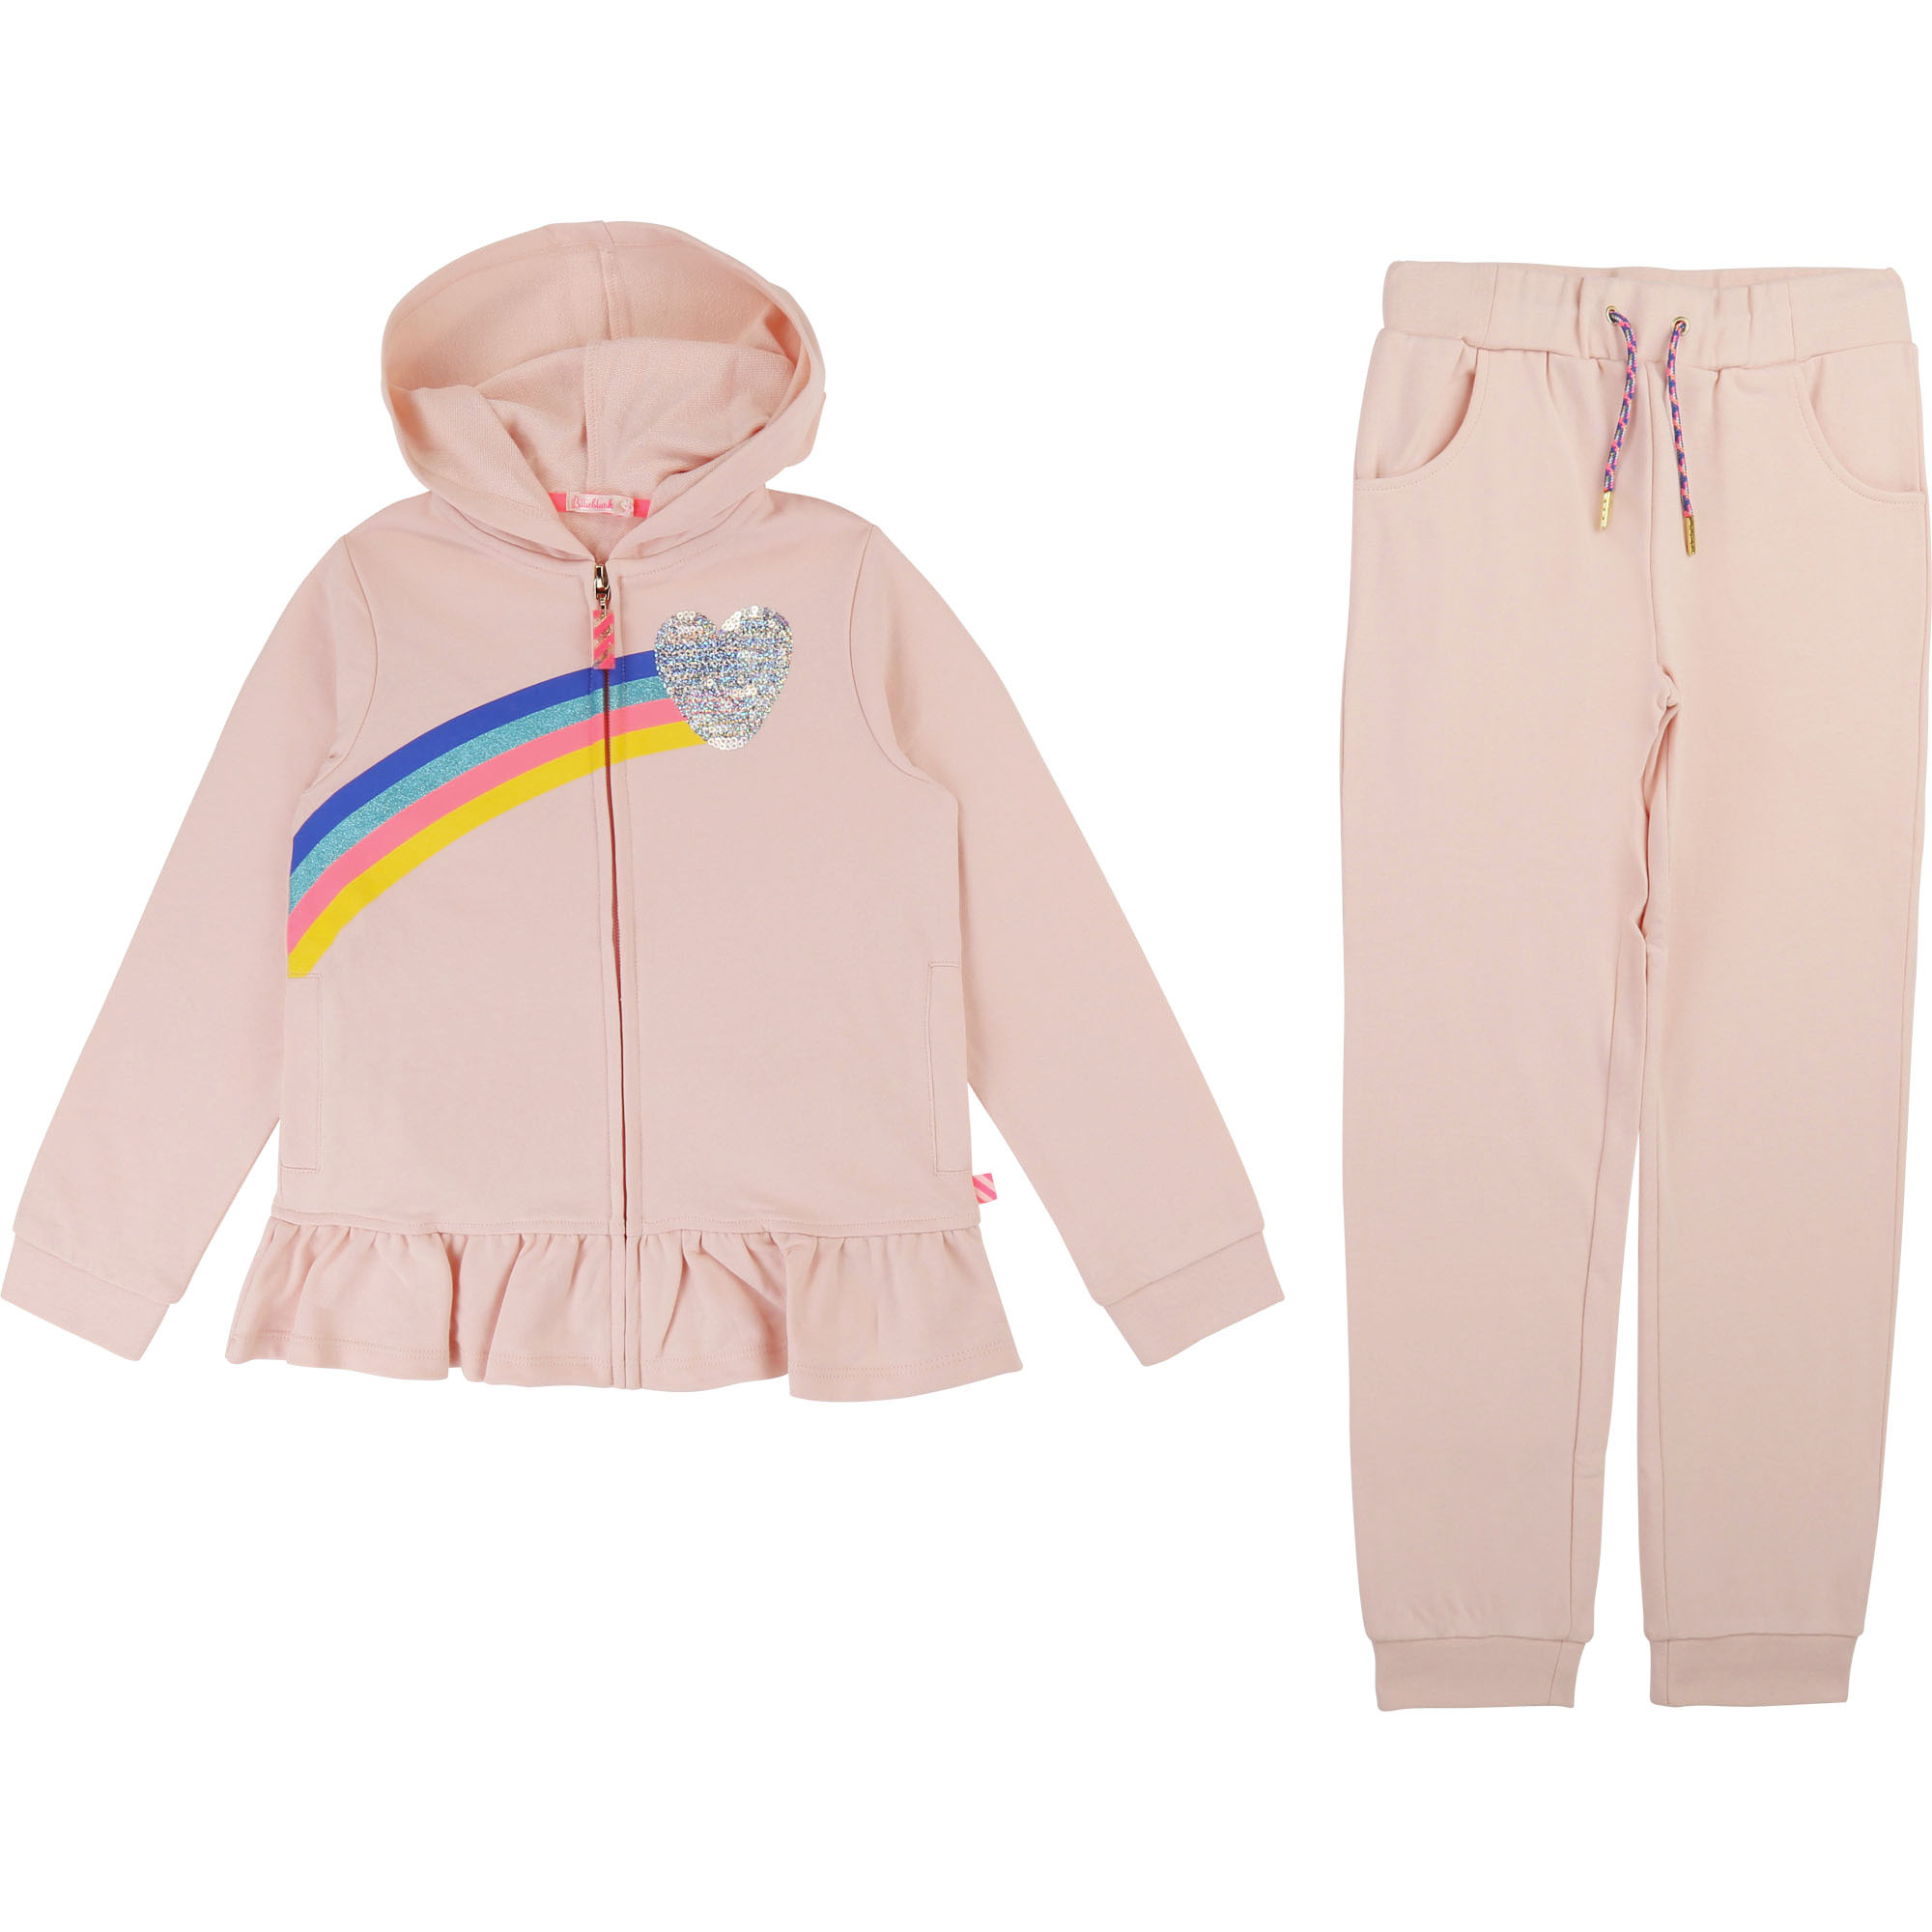 TRACK SUIT BILLIEBLUSH for GIRL